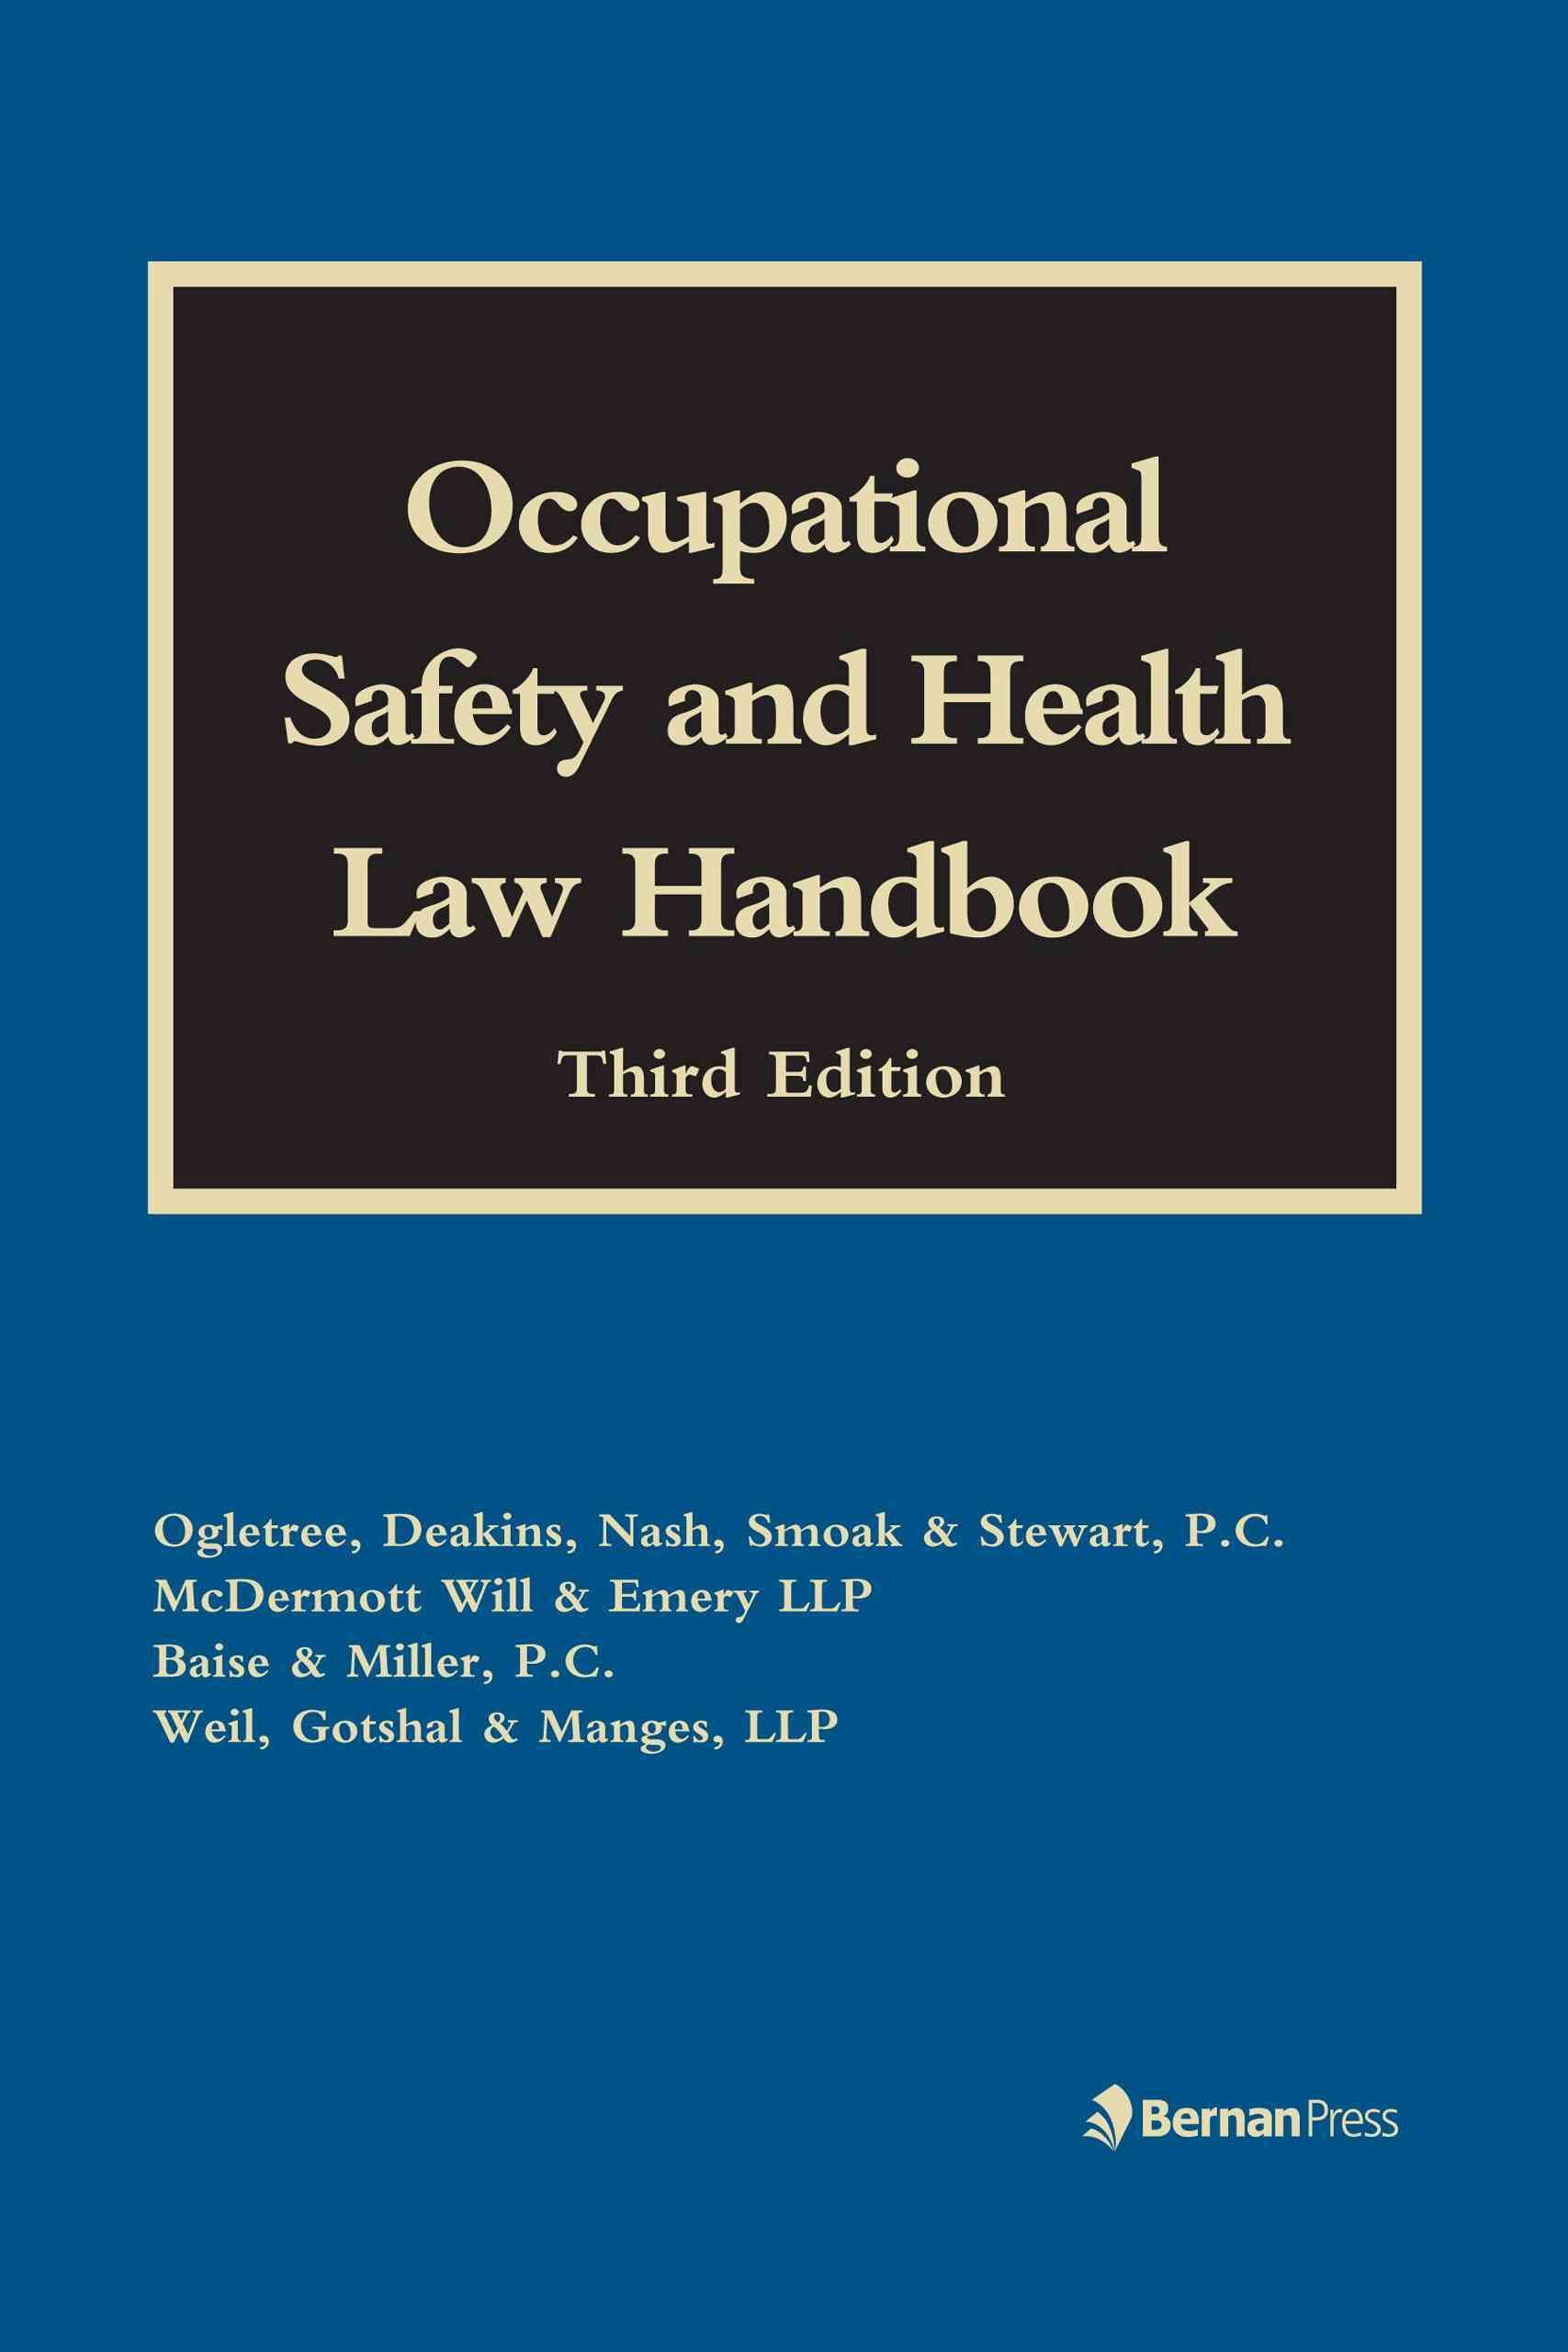 Occupational Safety and Health Law Handbook Occupational